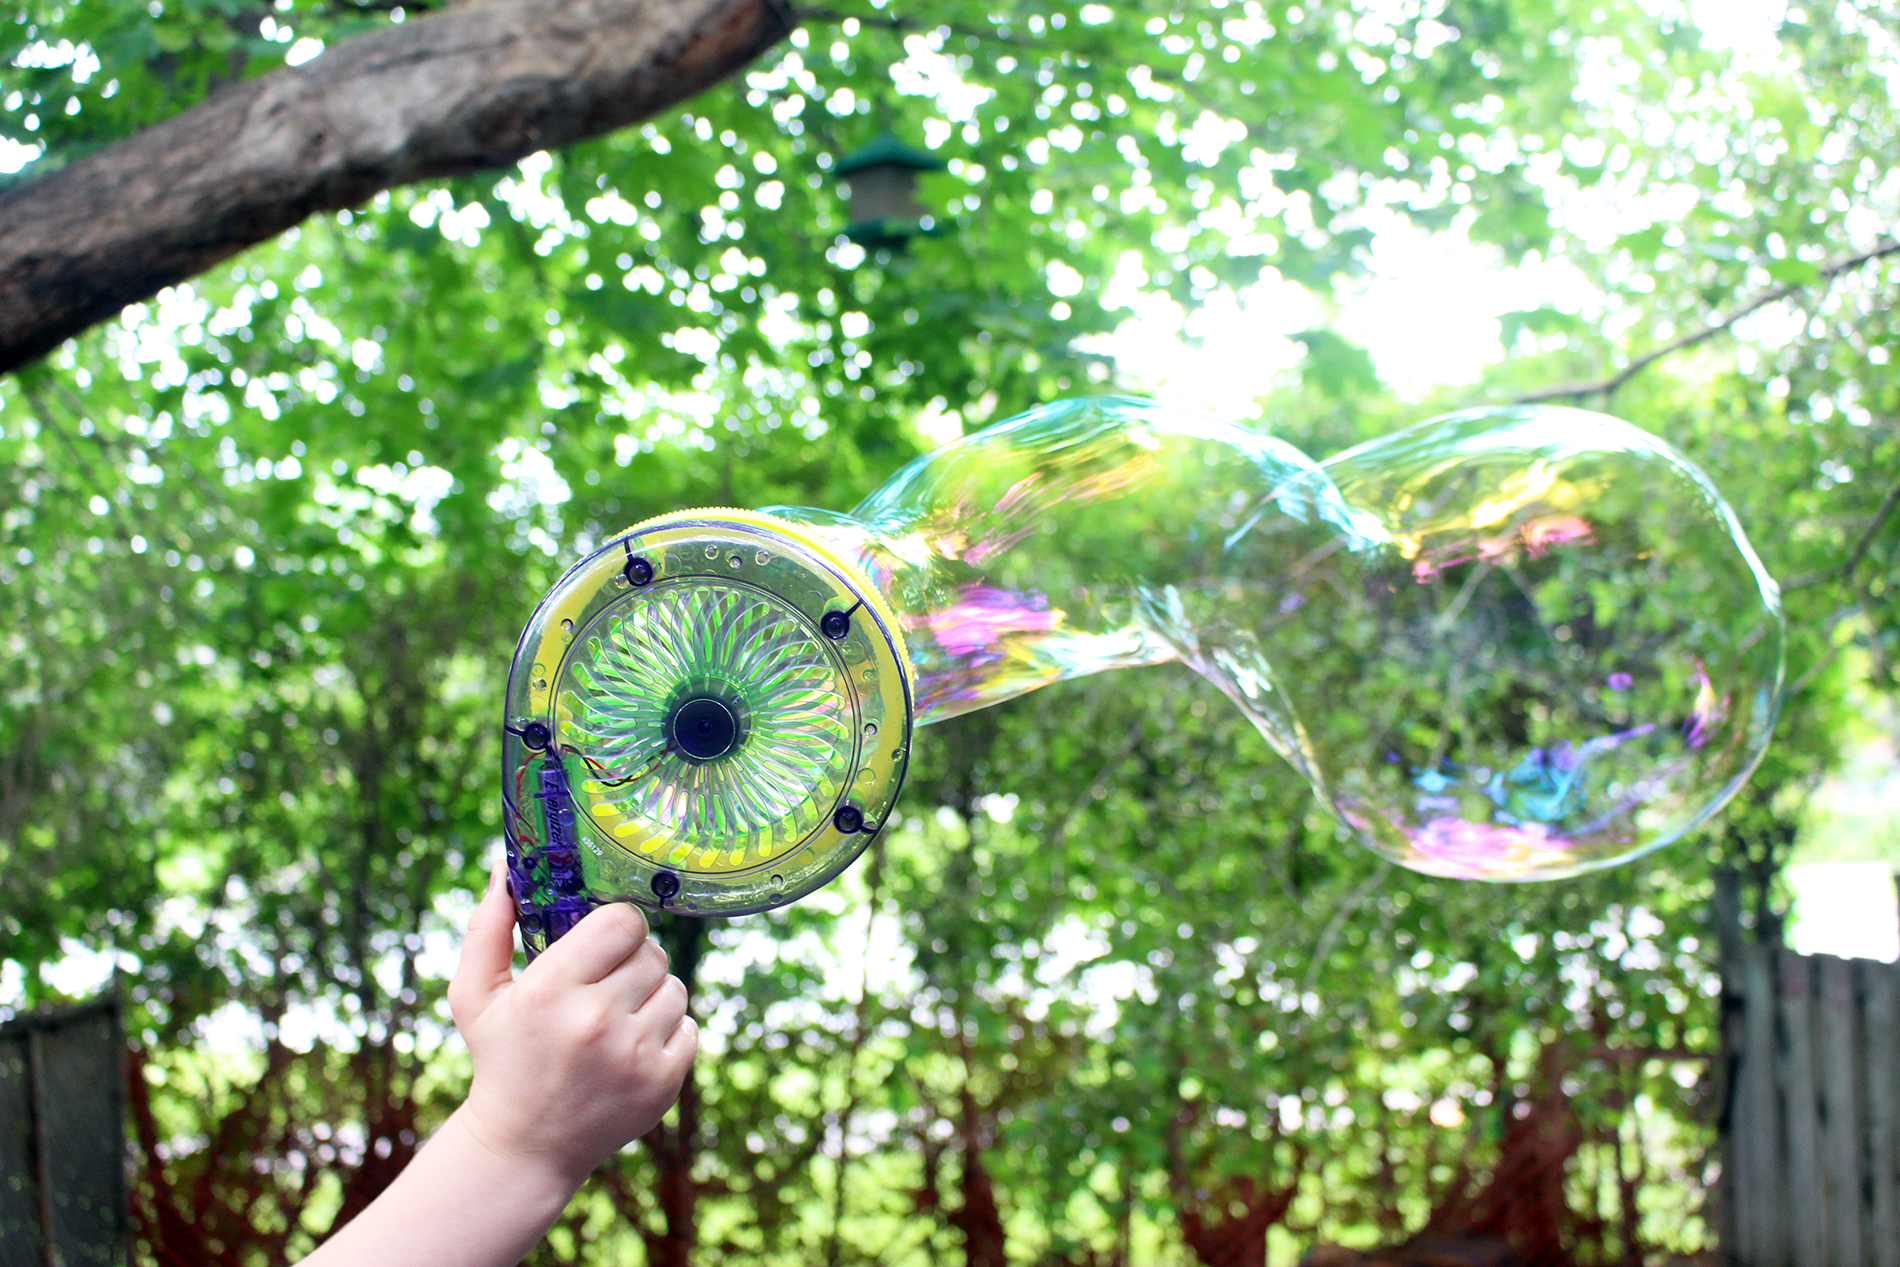 Get Outside This Summer With Gazillion Bubbles!